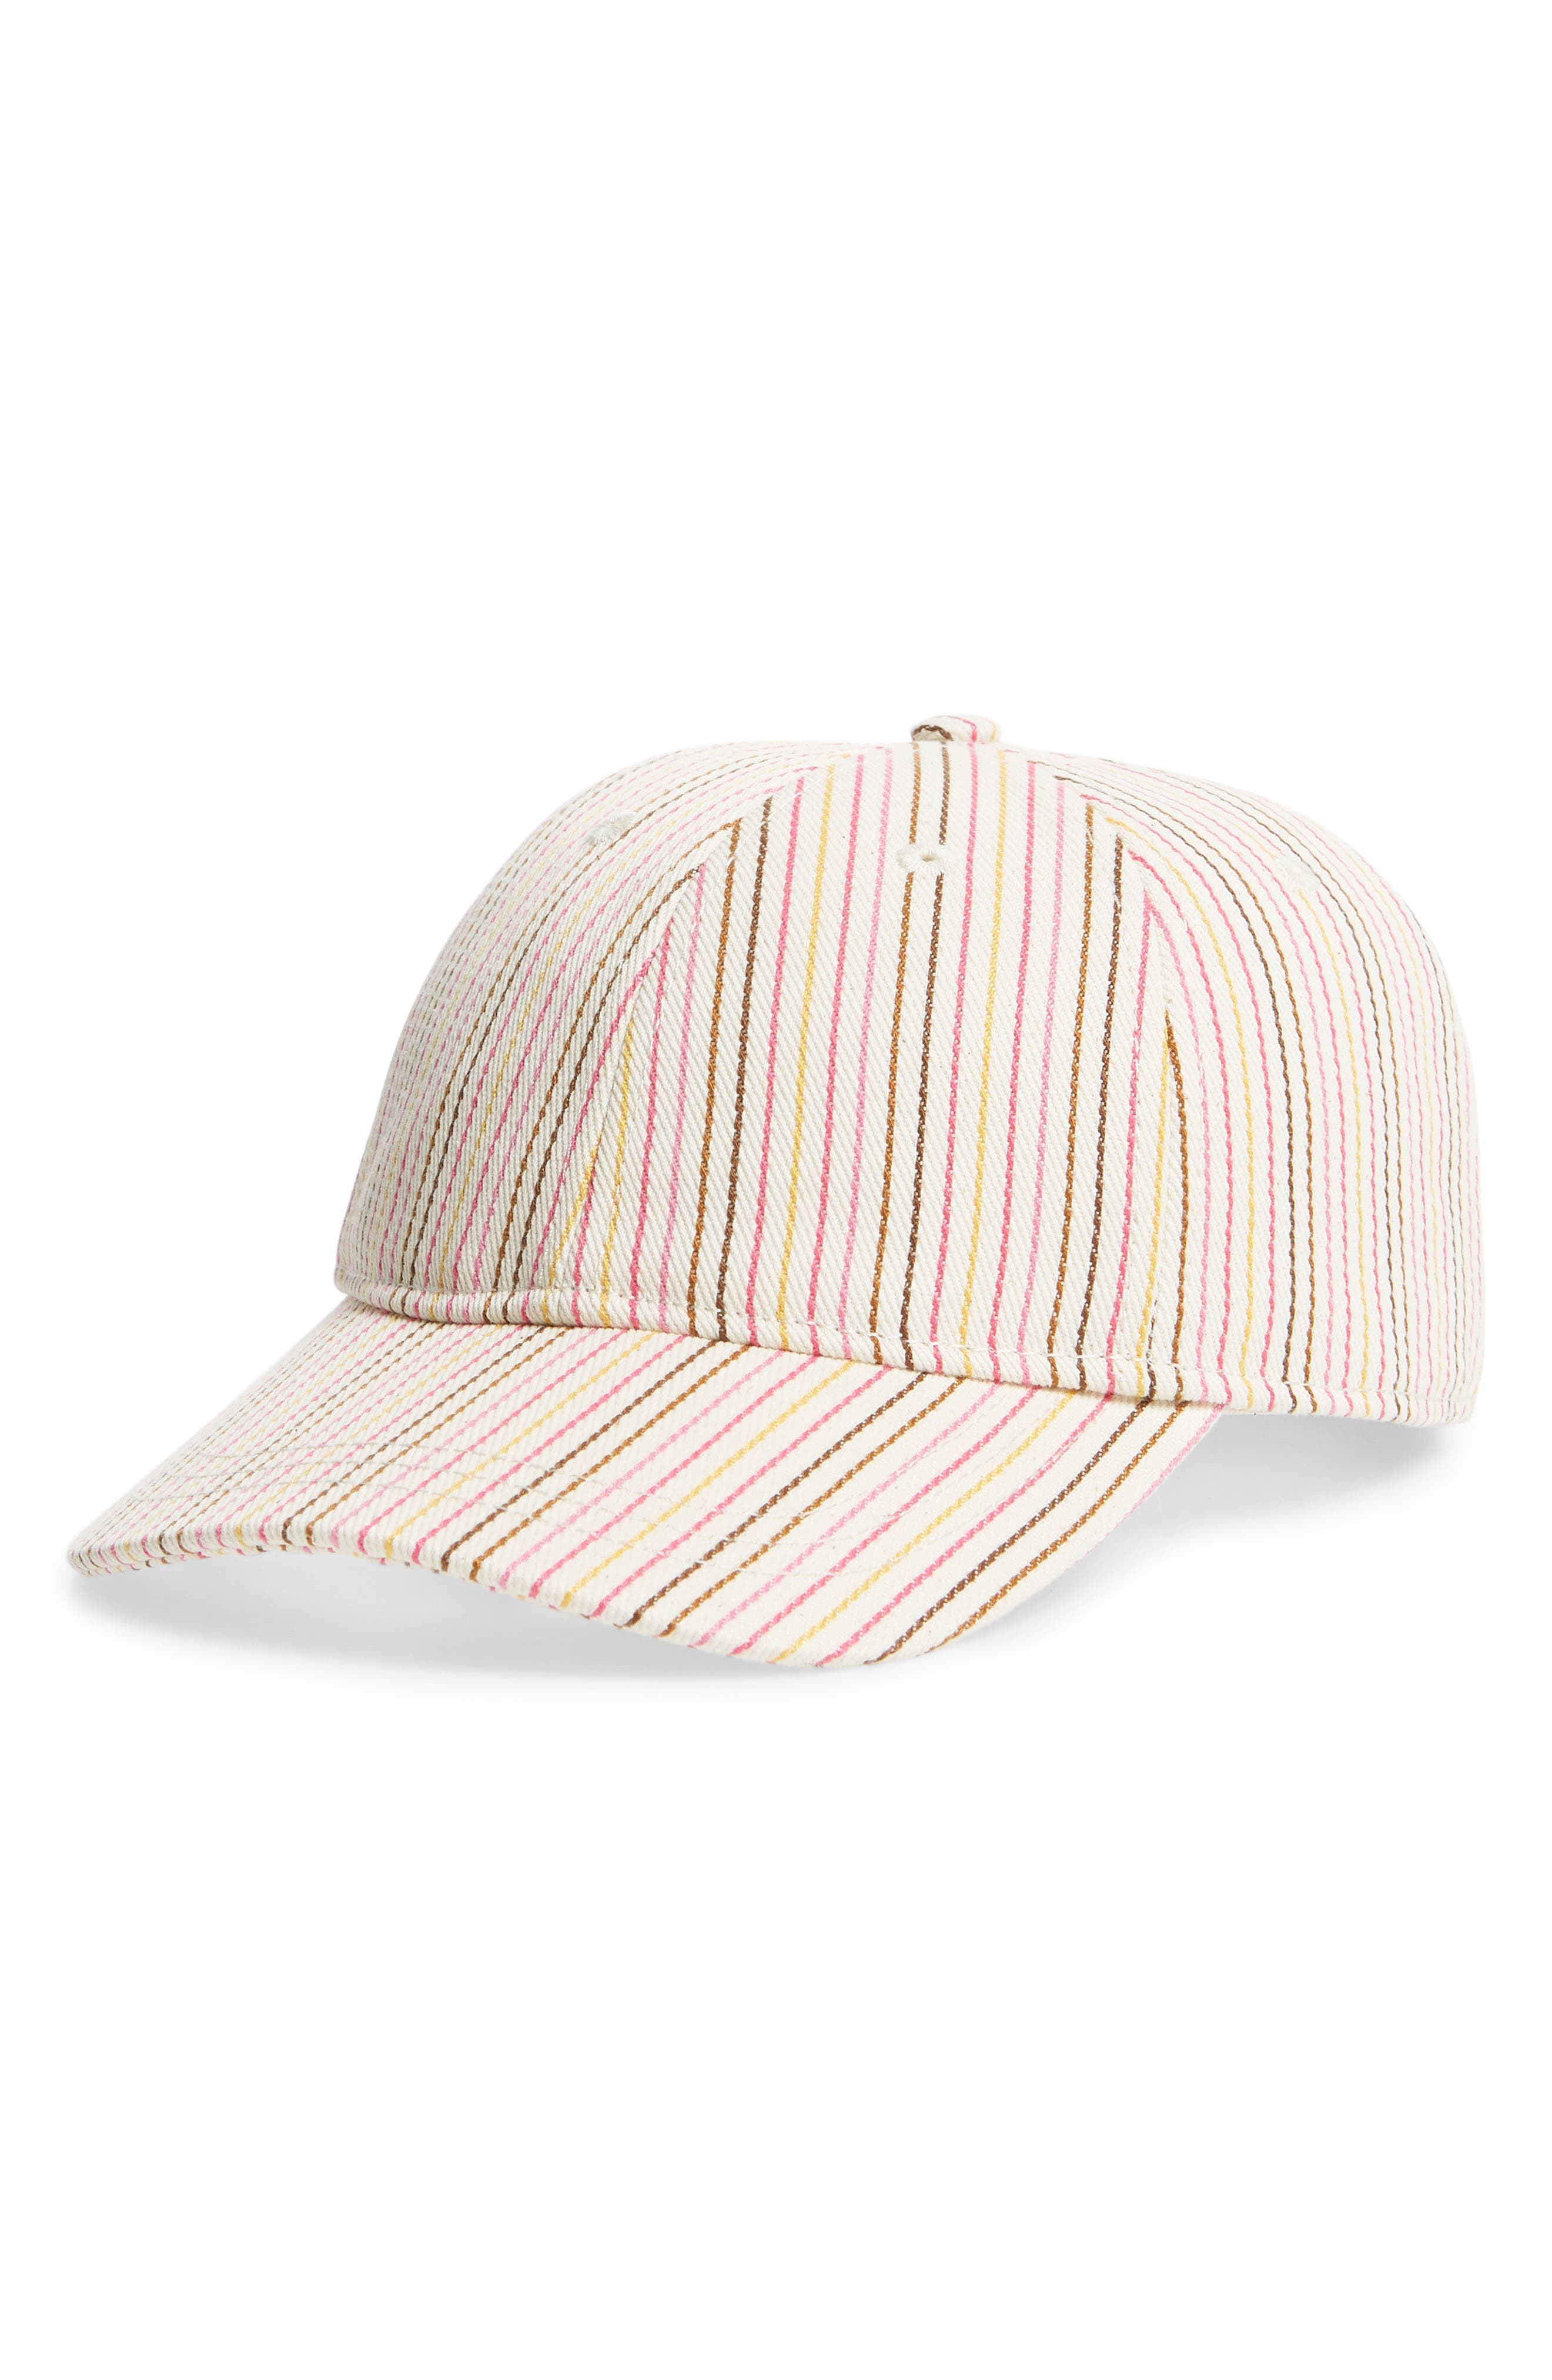 Multi Stripe Baseball Cap,                             Main thumbnail 1, color,                             Pink Multi Stripe